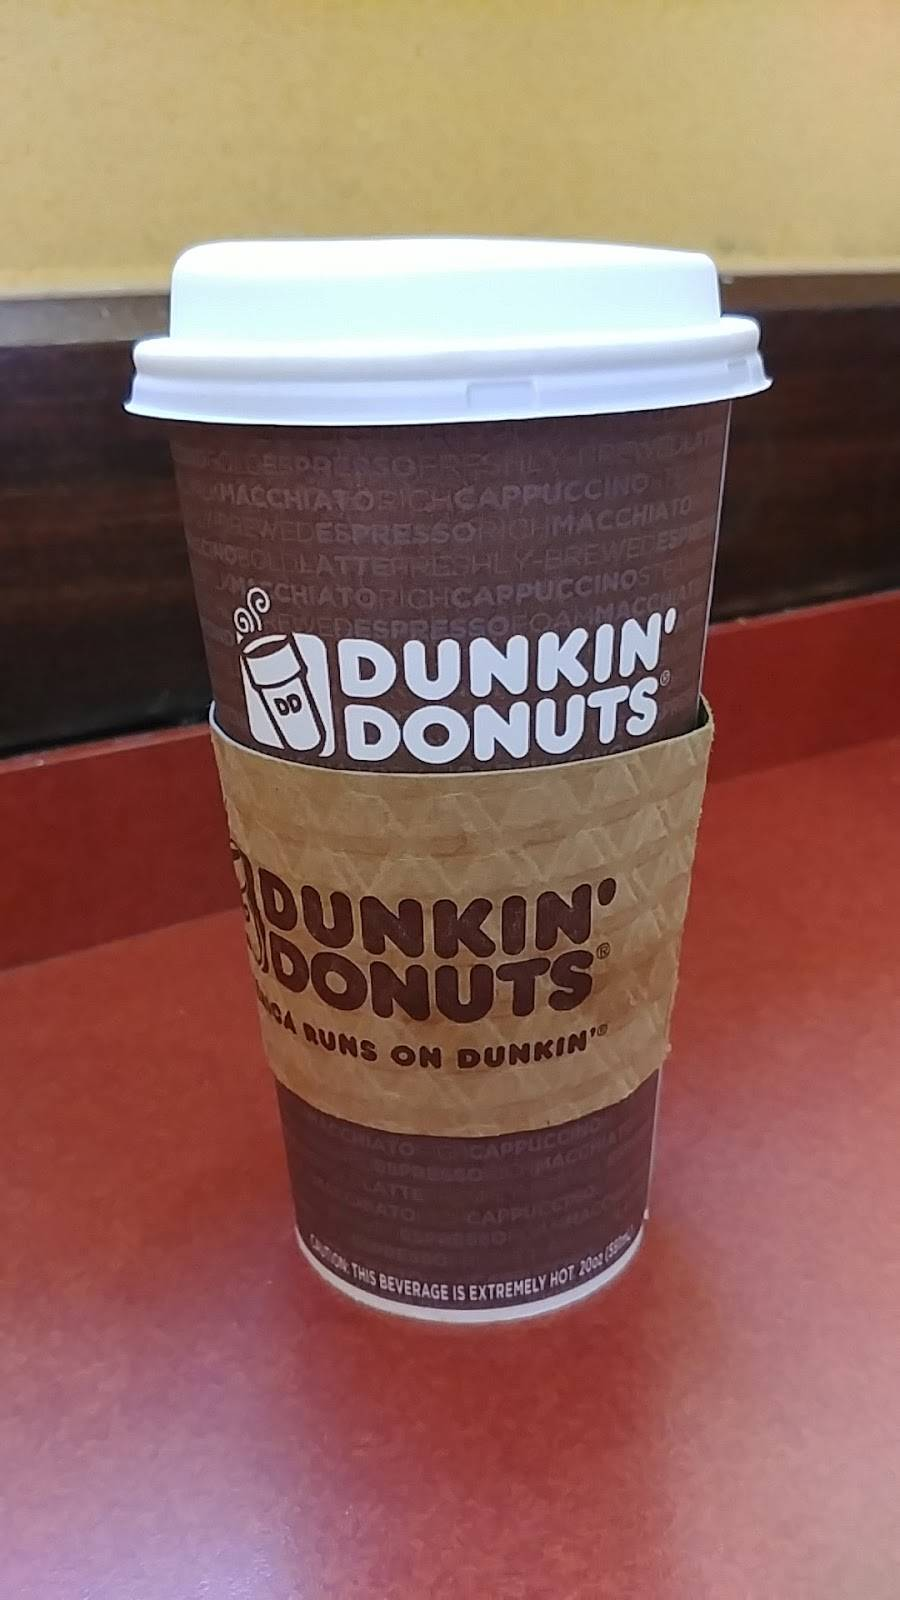 Dunkin Donuts | cafe | 680 St Nicholas Ave, New York, NY 10030, USA | 2122810056 OR +1 212-281-0056